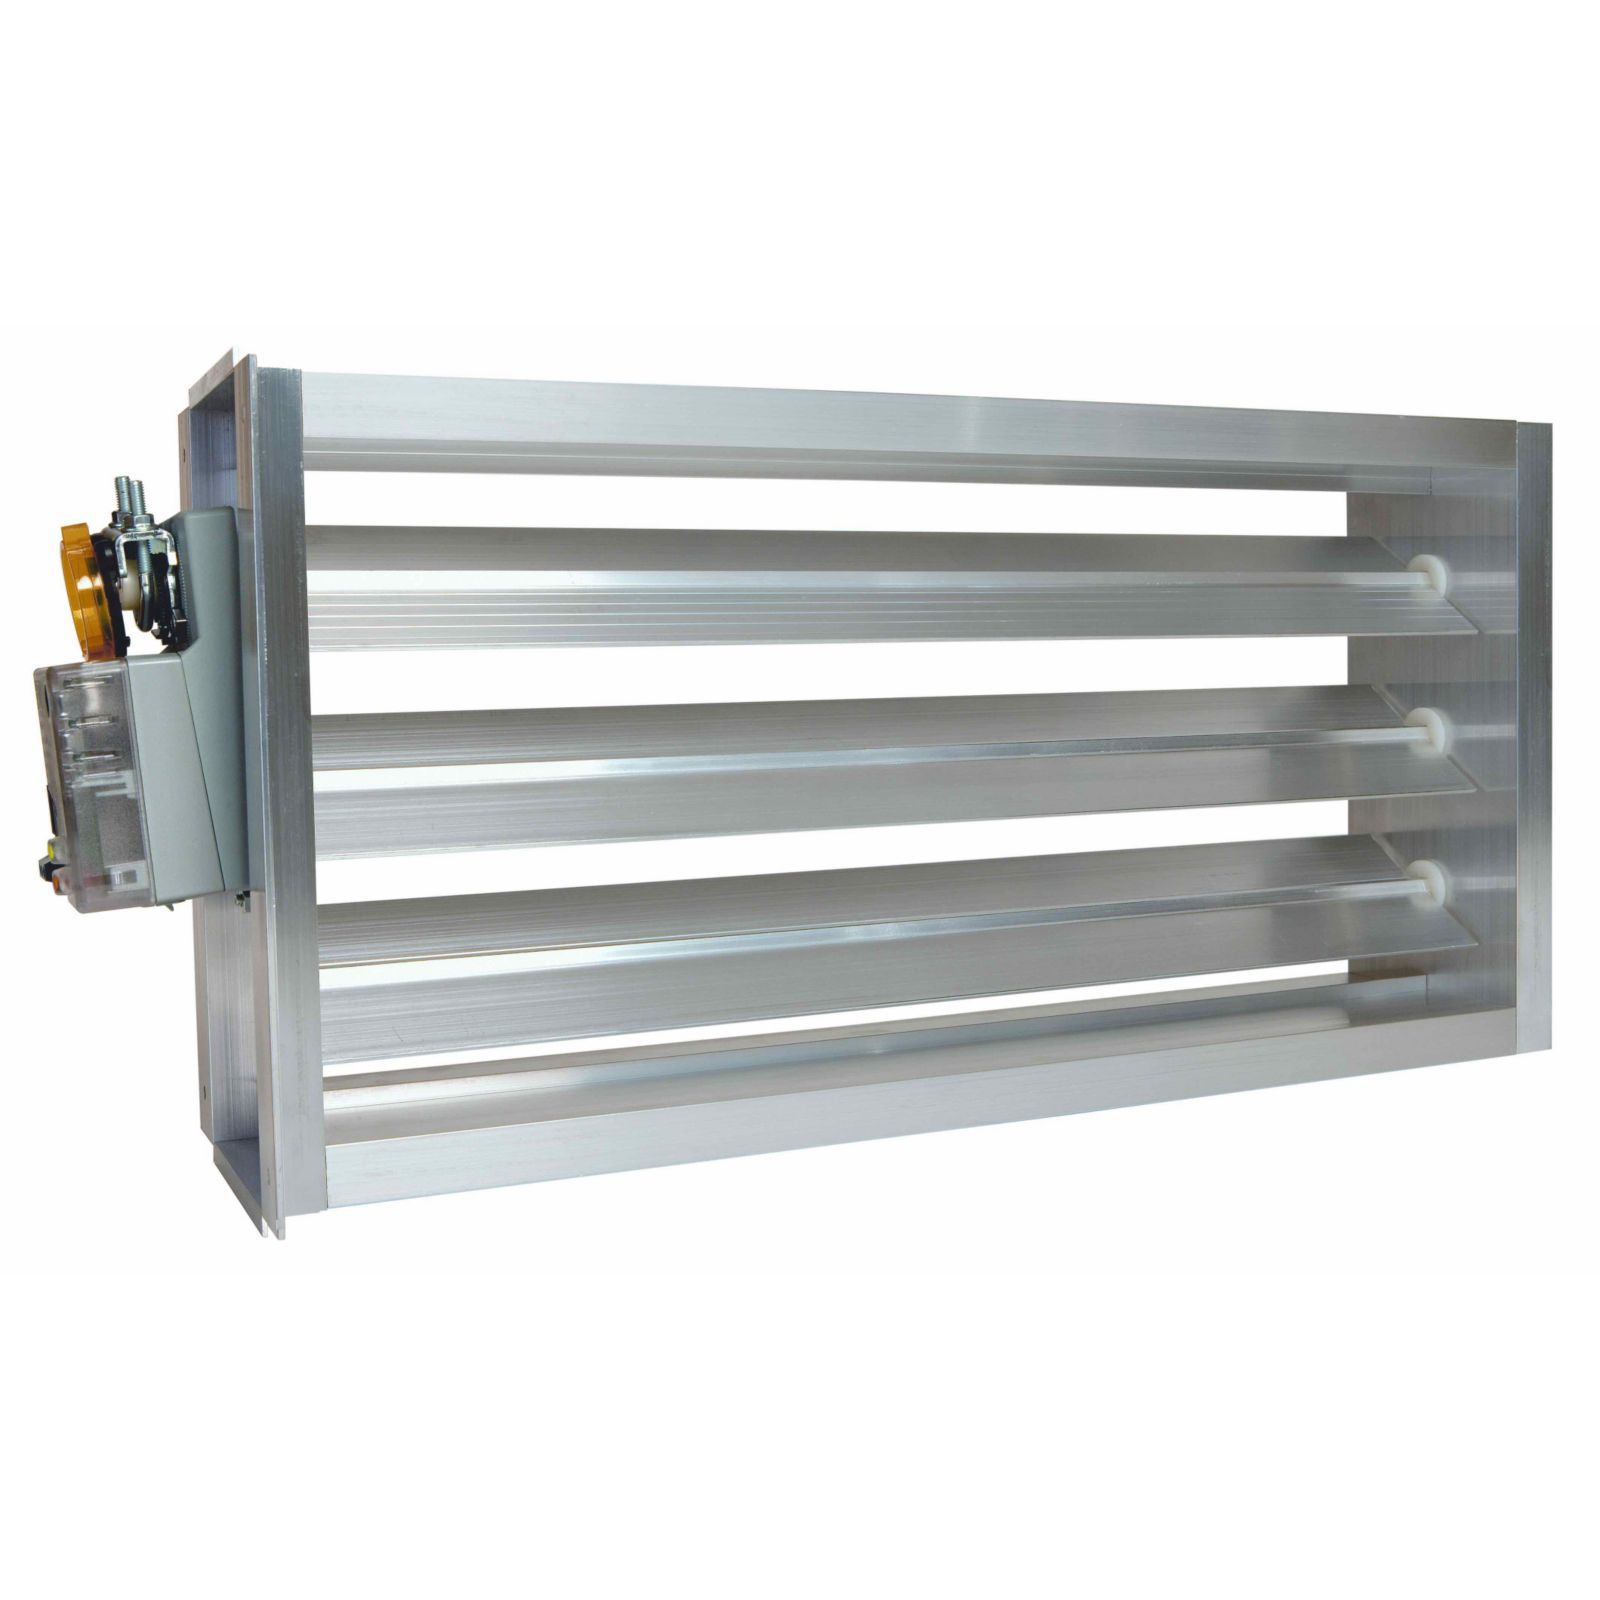 "EWC 20X10 ND - Motorized Ultra-Zone Damper, 20"" X 10"""